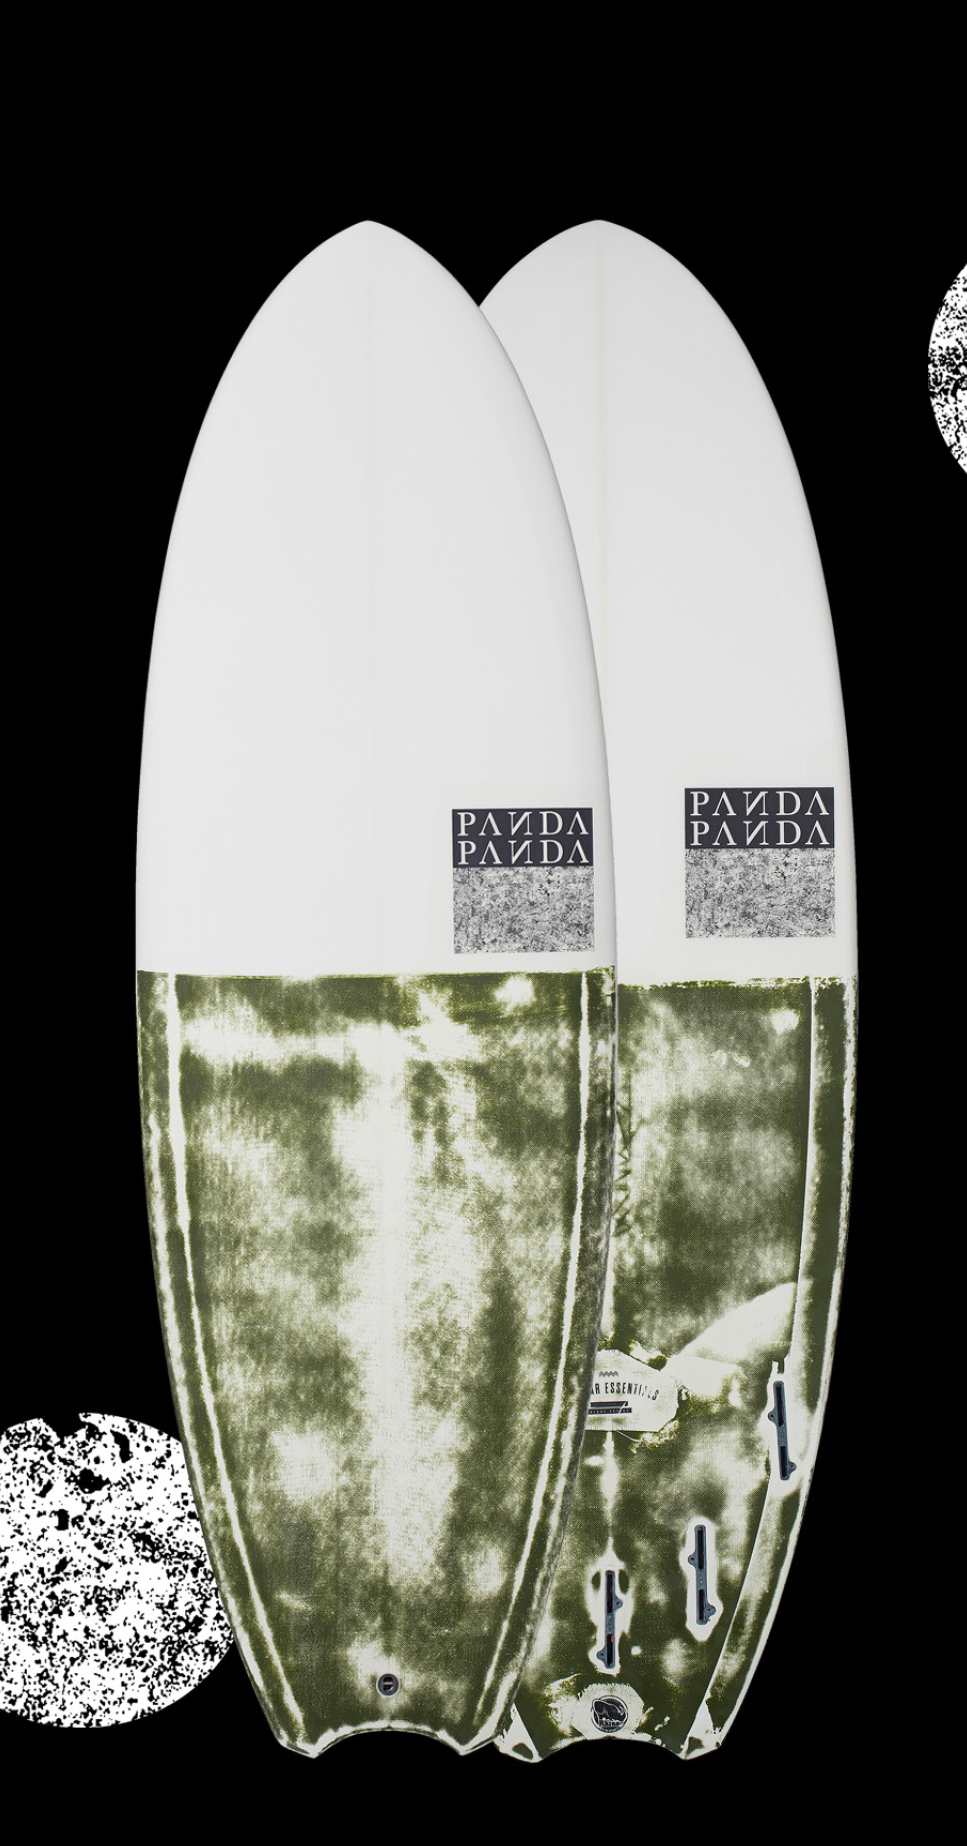 BEAR ESSENTIALS   This is a new take on the Doinker. We have pulled the nose and tail in (also adding flip to the nose) and giving you the option of a 5 fin setup. This is for the guy that wants to rip apart tiny wave condi  -   tions. It features a single to deep double concave, with concave vee through the tail combined with a crazy looking diamond/cre  -   sent tail which shortens the rail line, but gives bite at the same time.